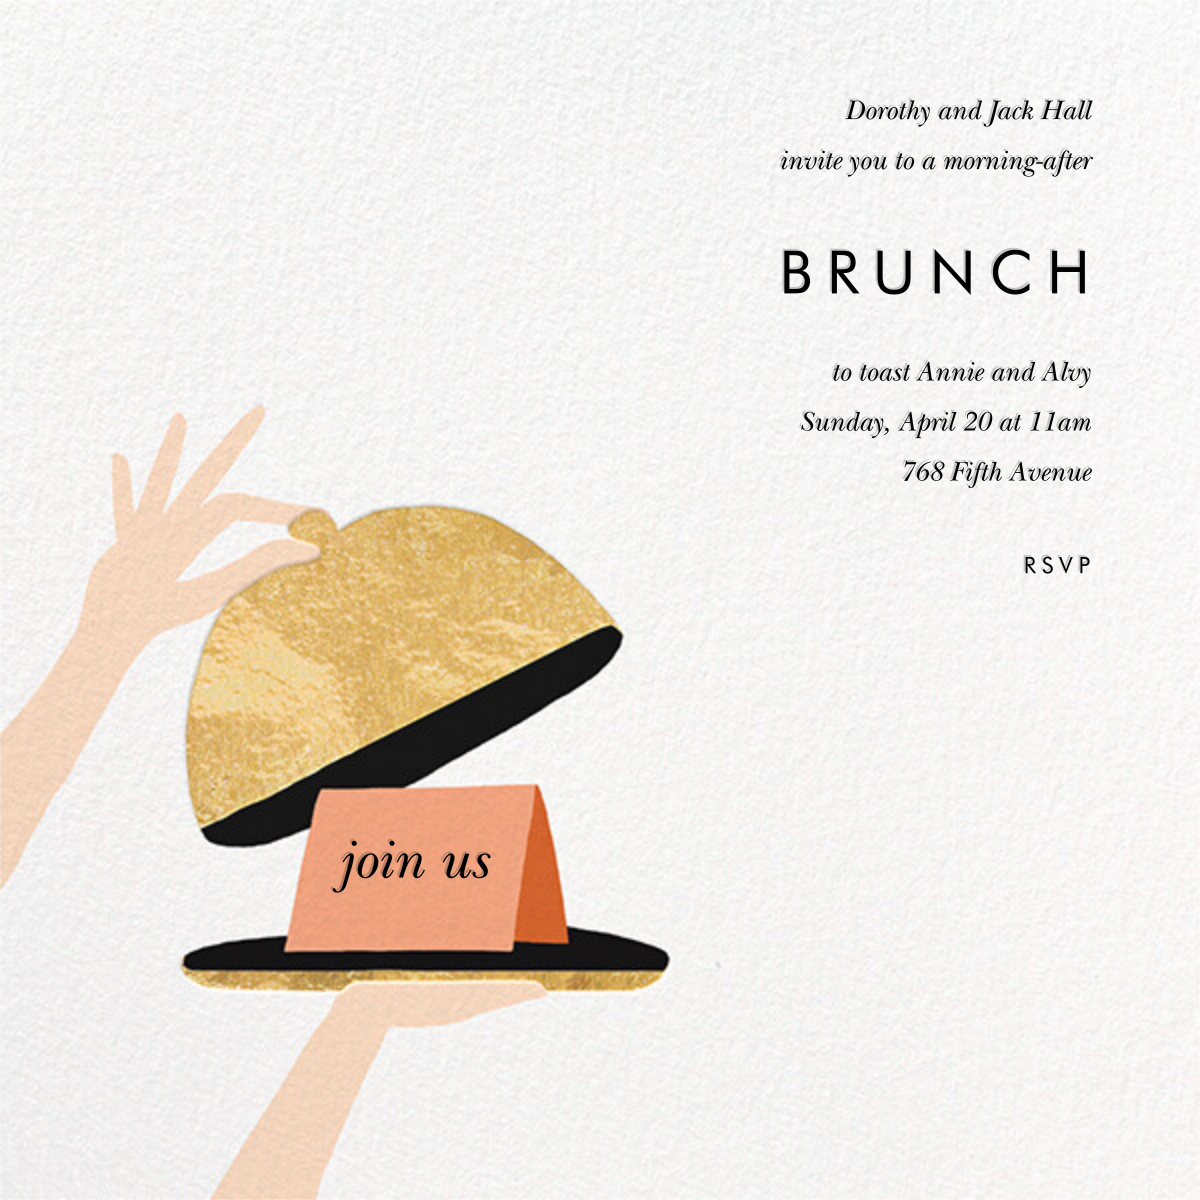 Cloche - Rifle Paper Co. - Wedding brunch